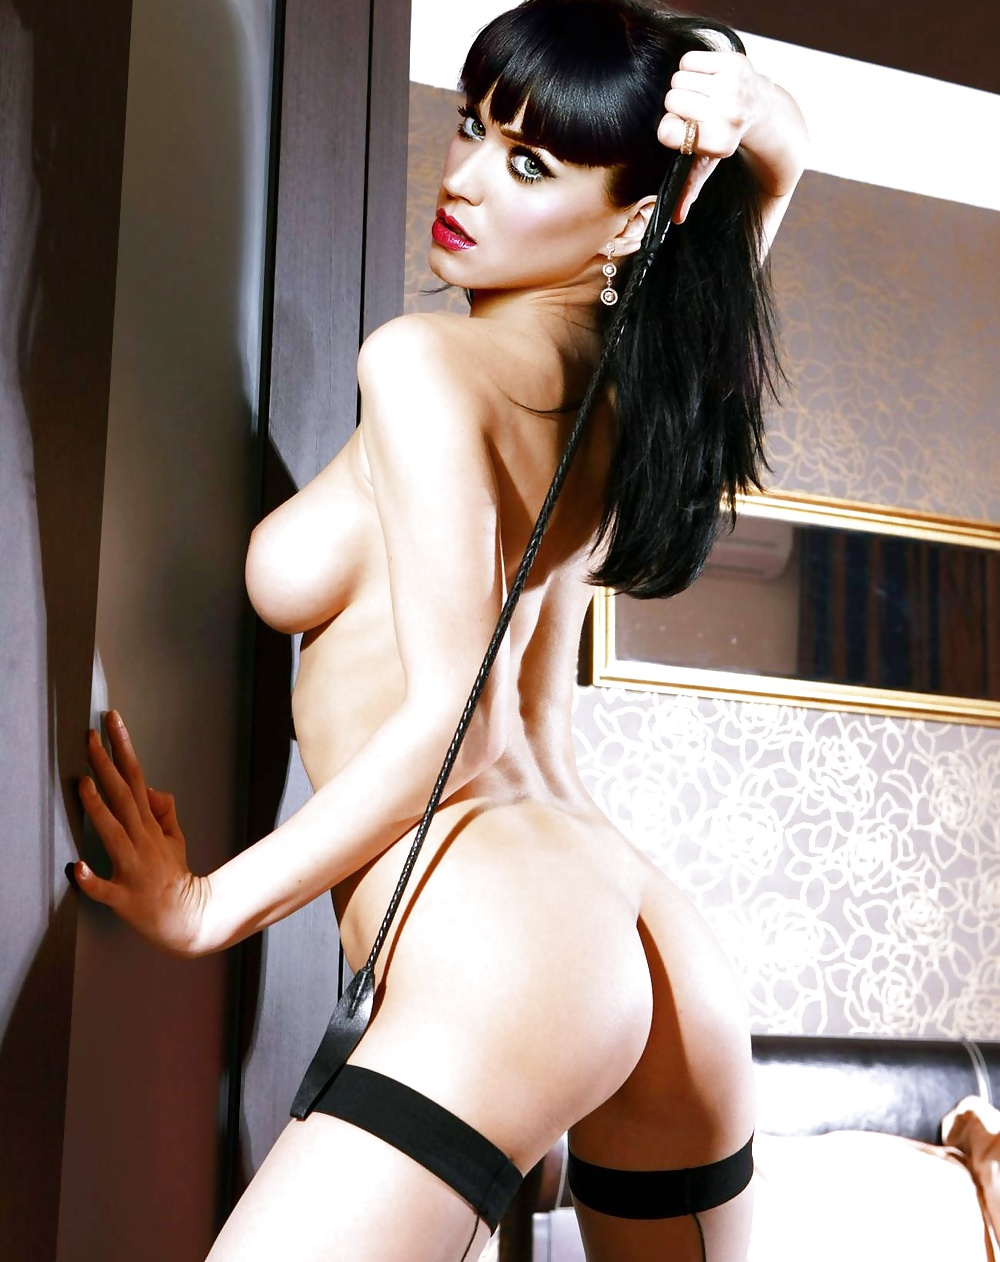 Katy perry google image searches hot photos of herself